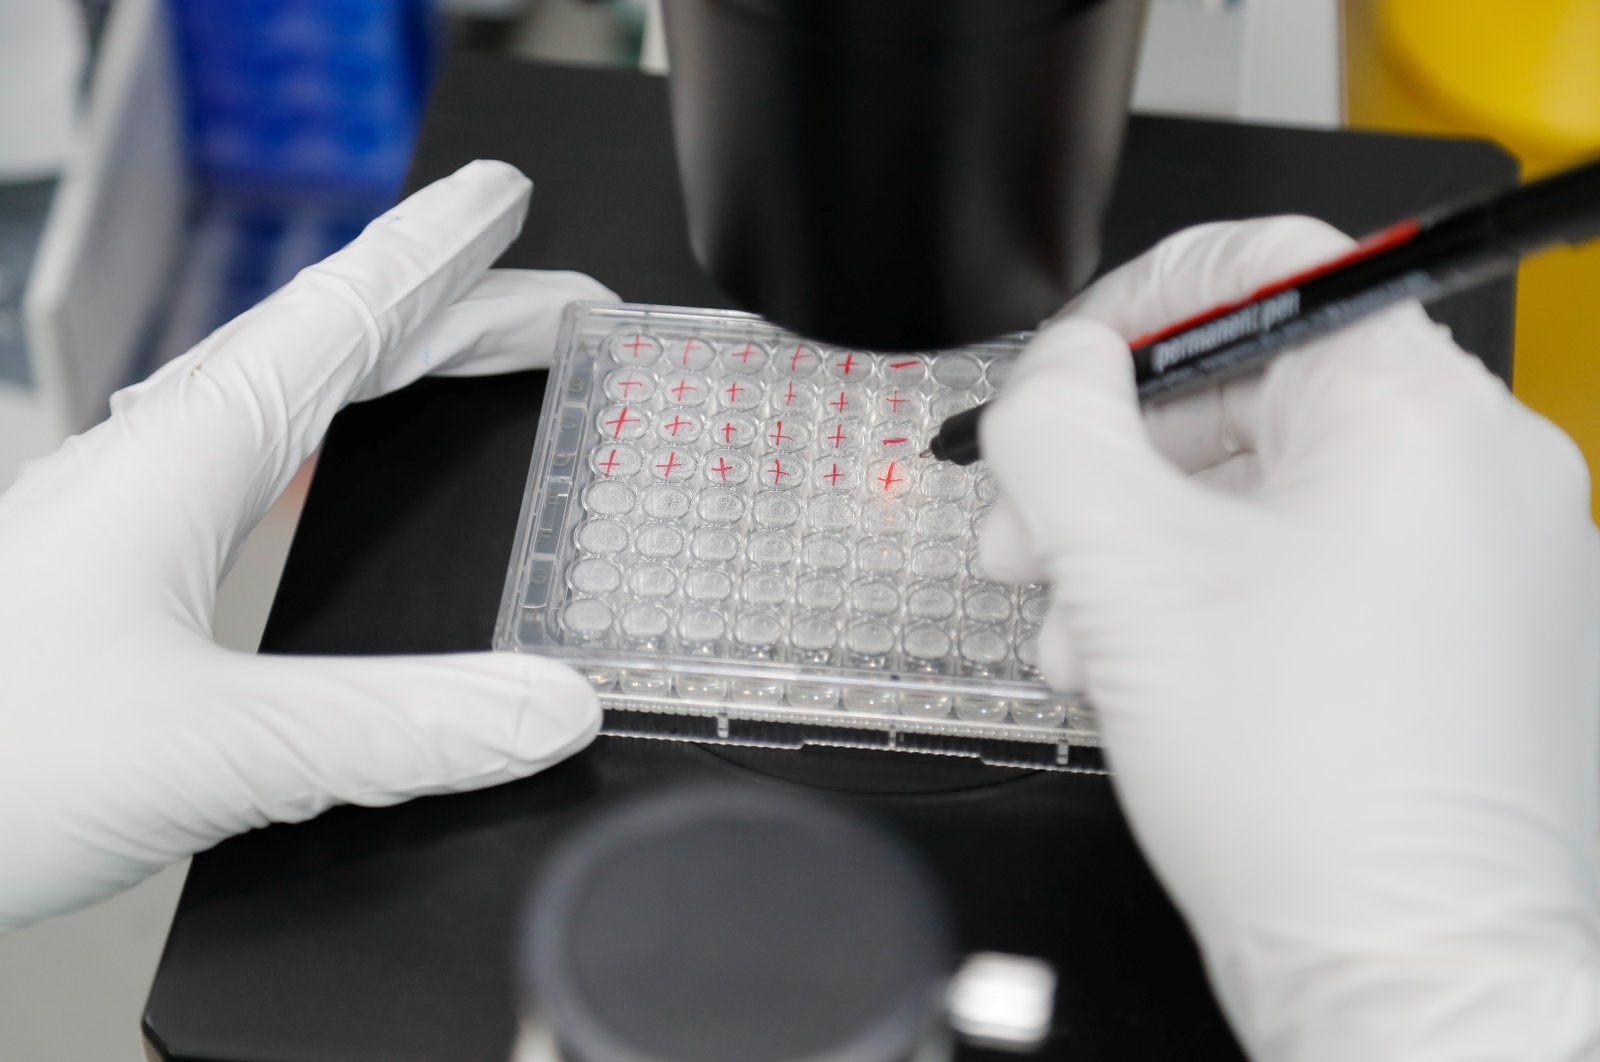 A scientist examines COVID-19 infected cells during research for a vaccine at a laboratory of BIOCAD biotechnology company in Saint Petersburg, Russia, May 20, 2020. (Reuters Photo)